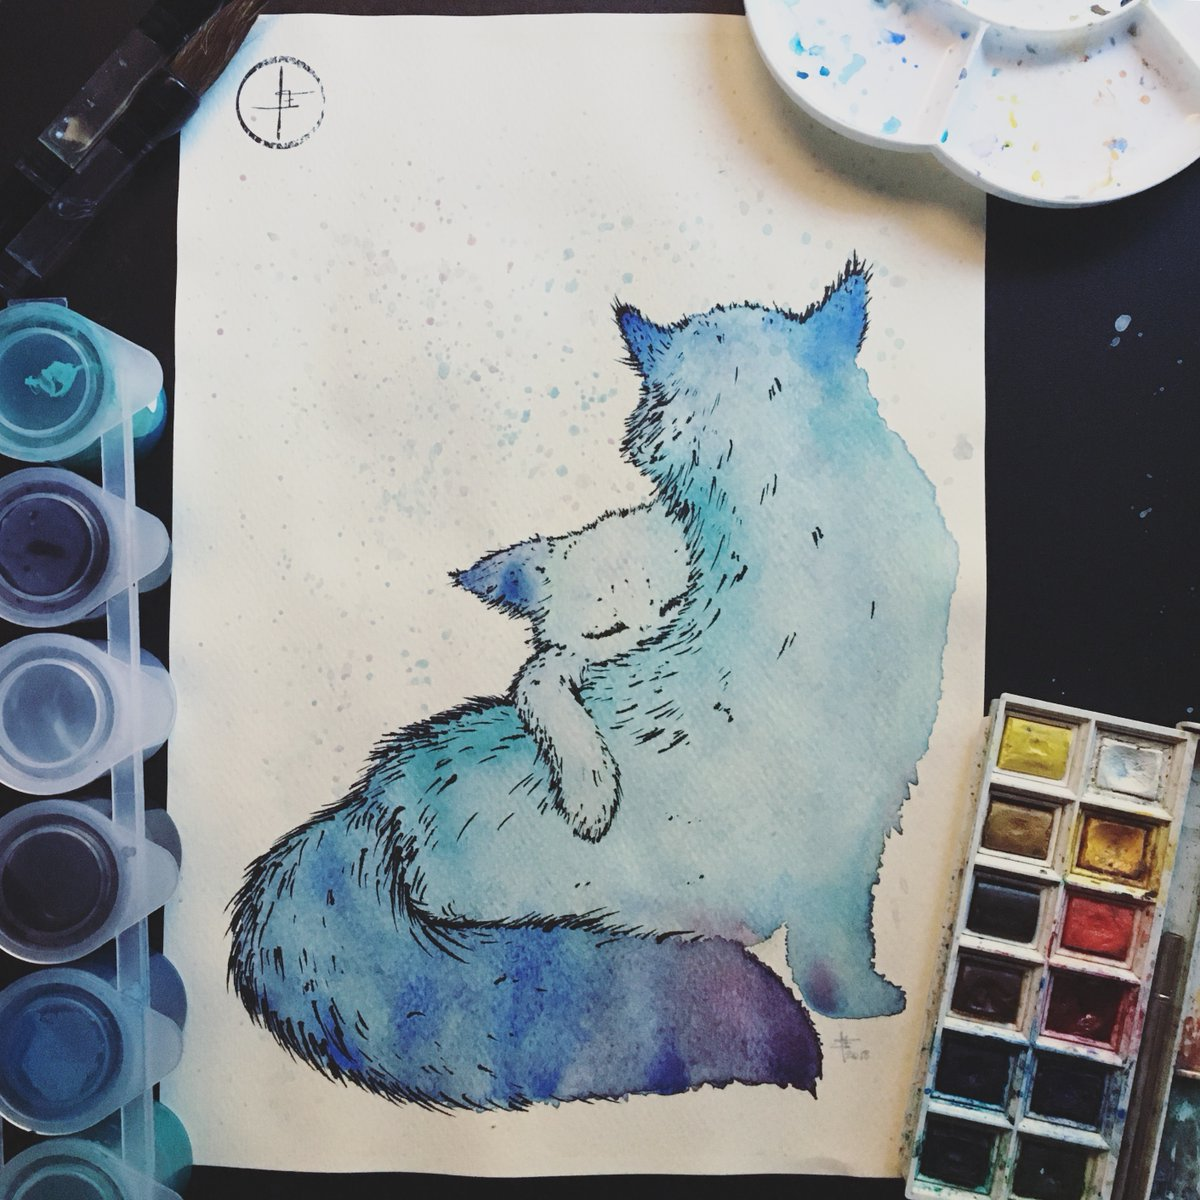 Happy Caturday! (2018) . #cat #cats #catsofinstagram #caturday #catdrawing #watercolor #watercolours #watercolorpainting #blue #bluetones #throwback